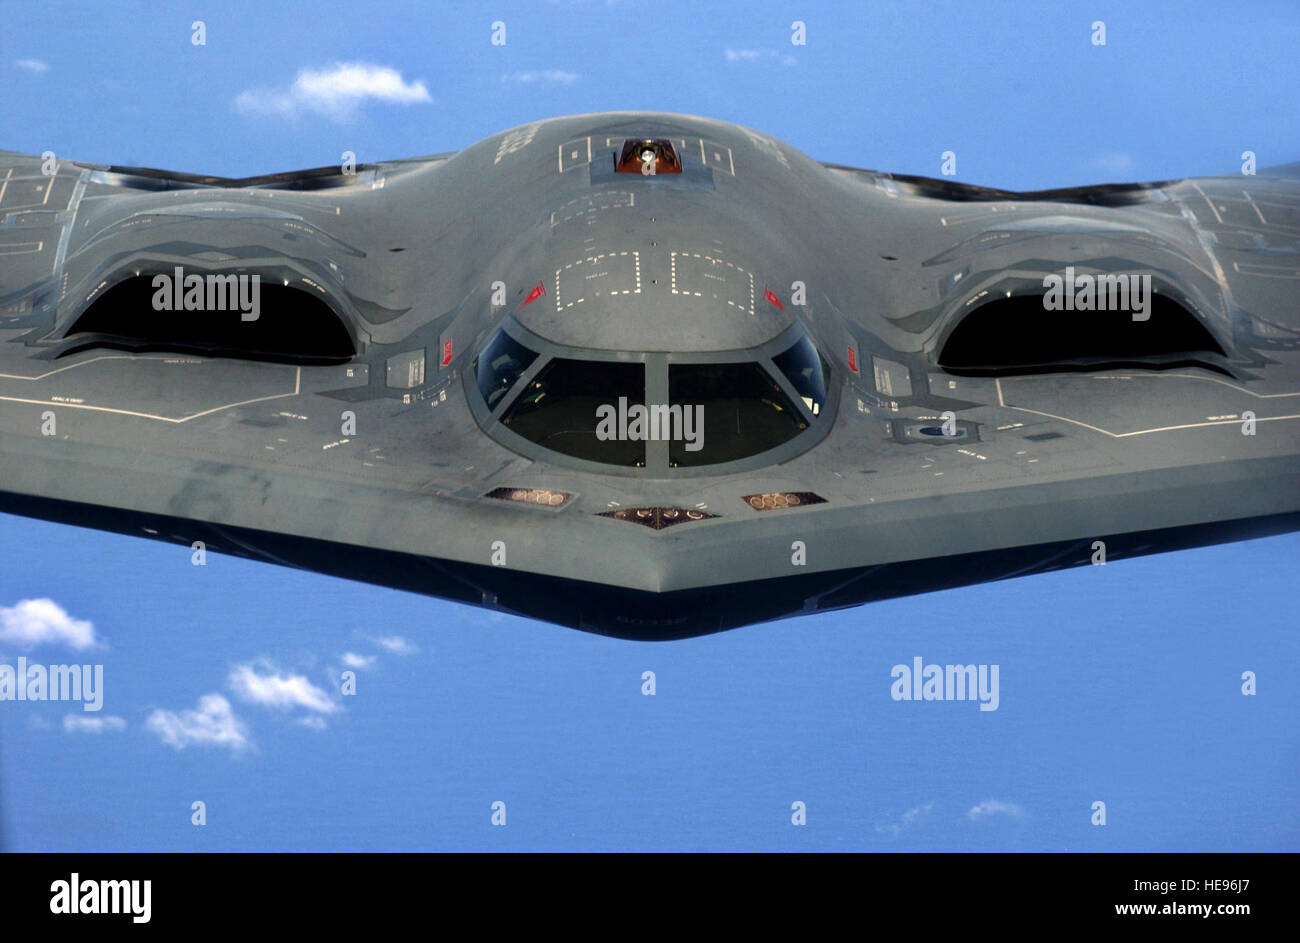 A U.S. Air Force B-2 Spirit 'Stealth' bomber, 393rd Expeditionary Bomb Squadron, 509th Bomb Wing, Whiteman - Stock Image